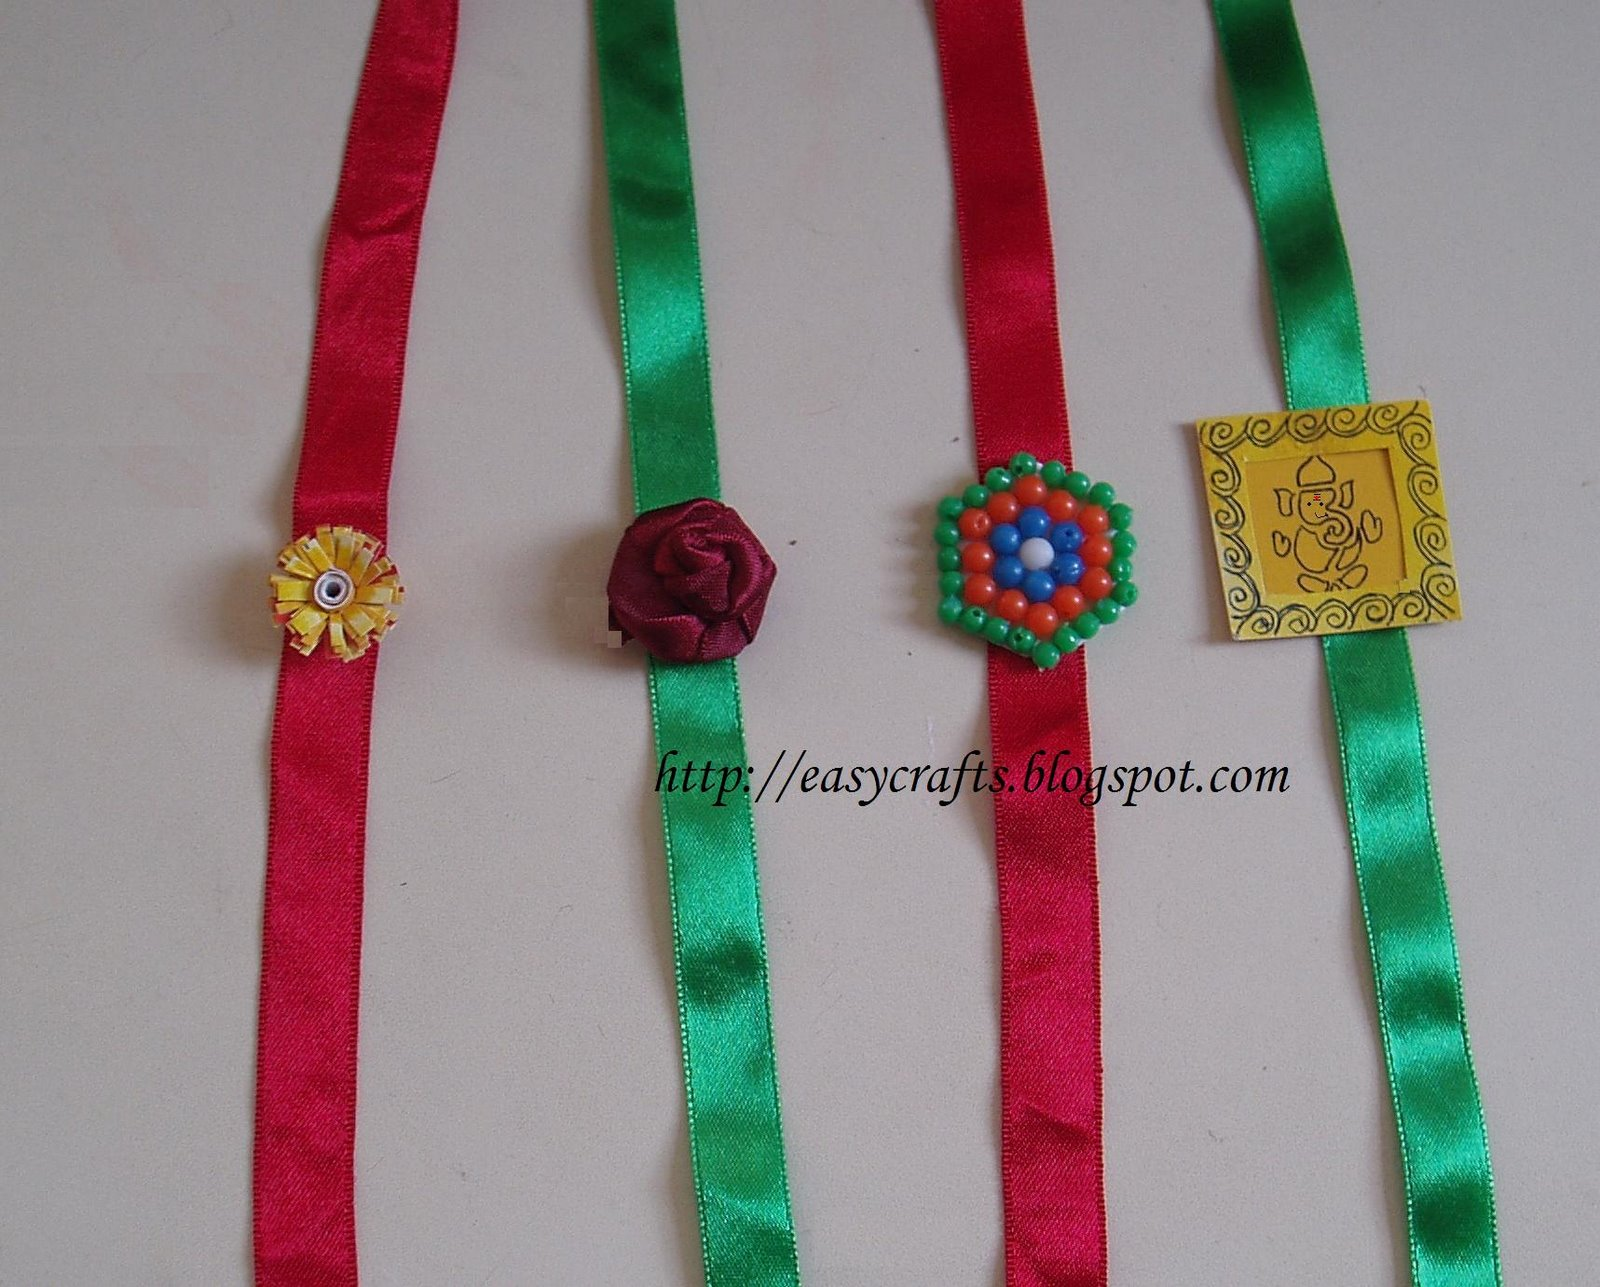 Easy Crafts  Explore your creativity: Handmade Rakhis